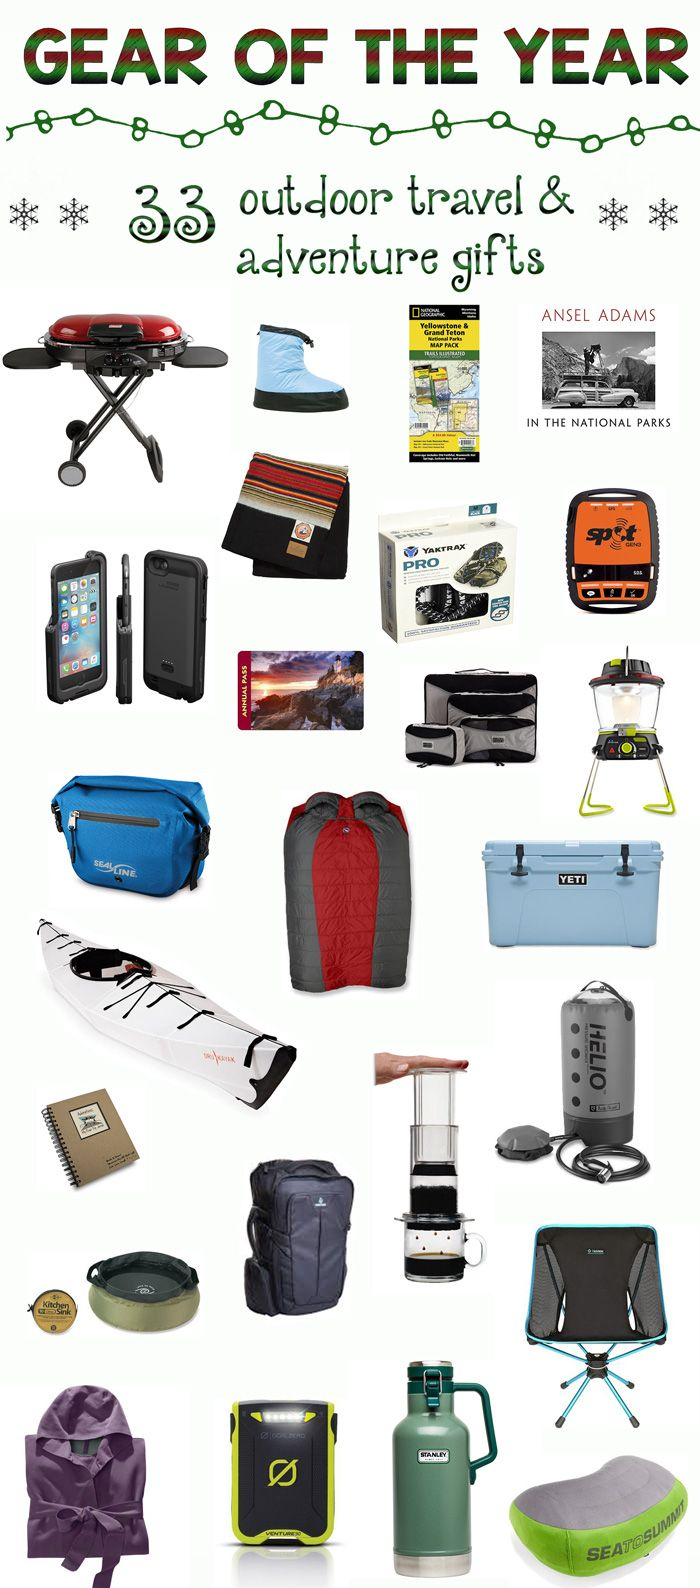 The ultimate holiday gift list featuring 33 awesome outdoor travel and adventure gifts for the special outdoor enthusiast in your life.